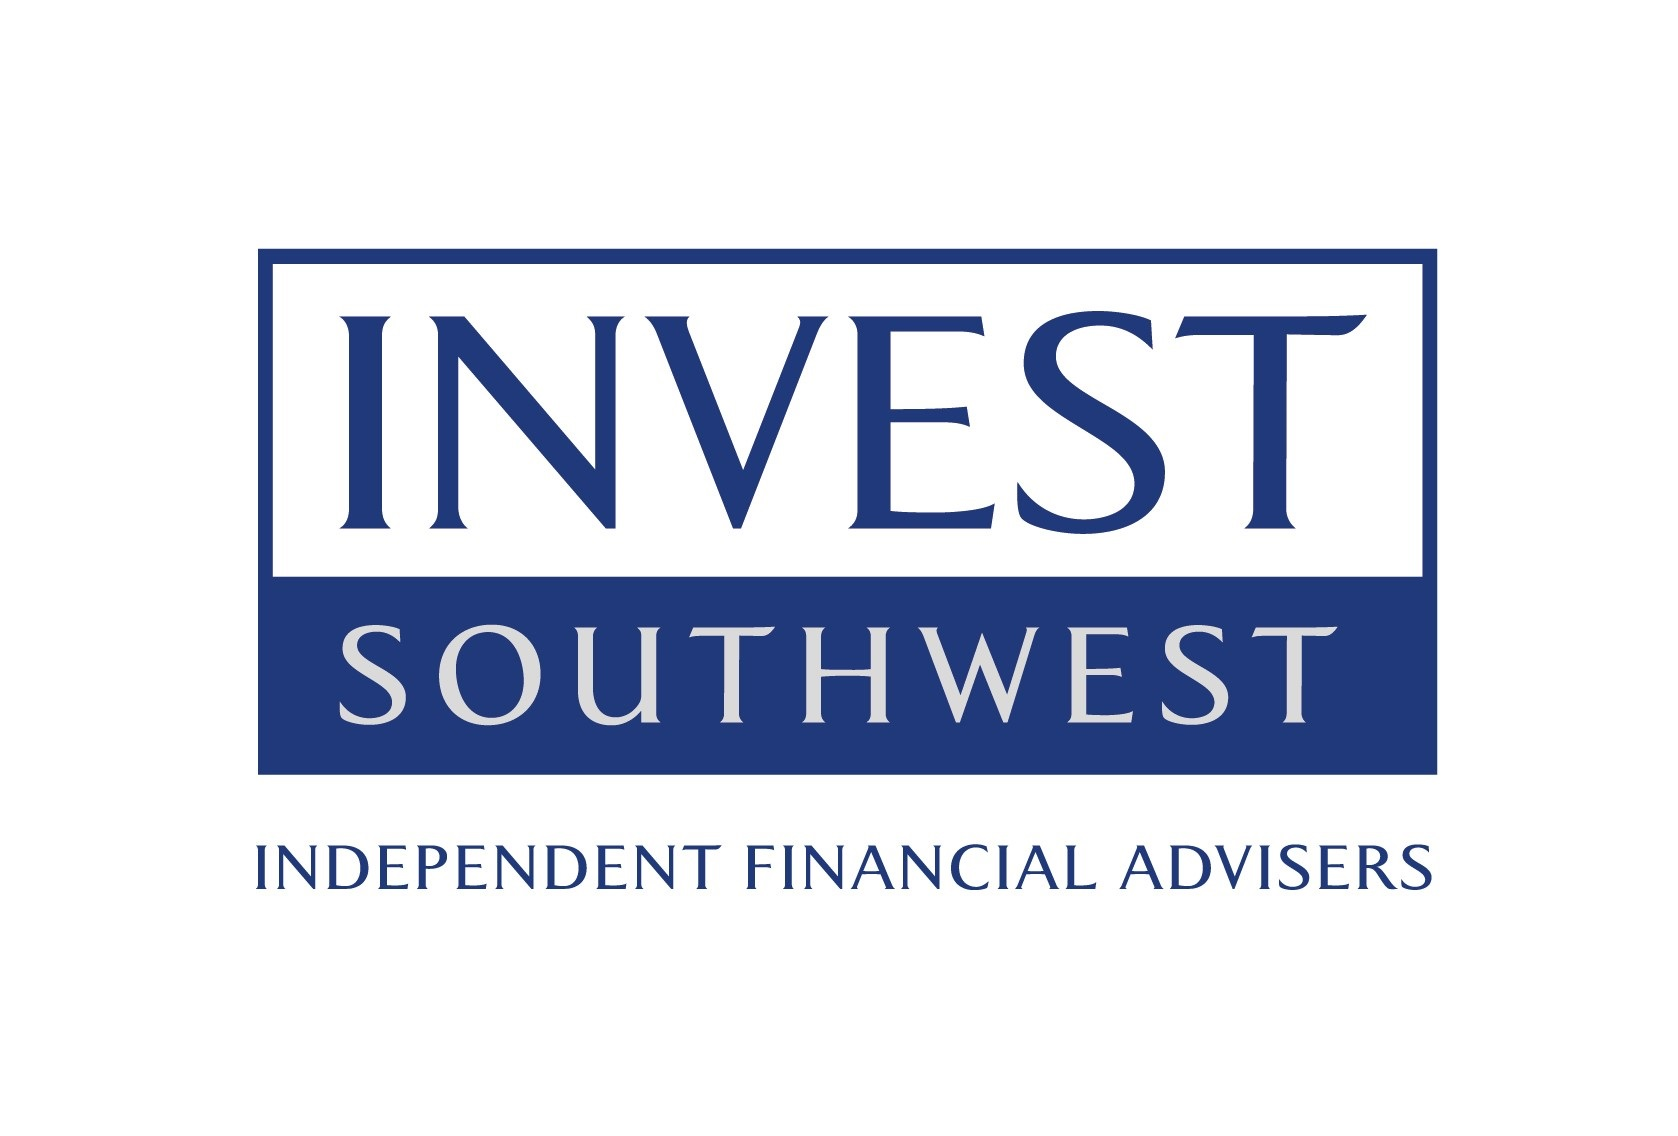 Invest Southwest